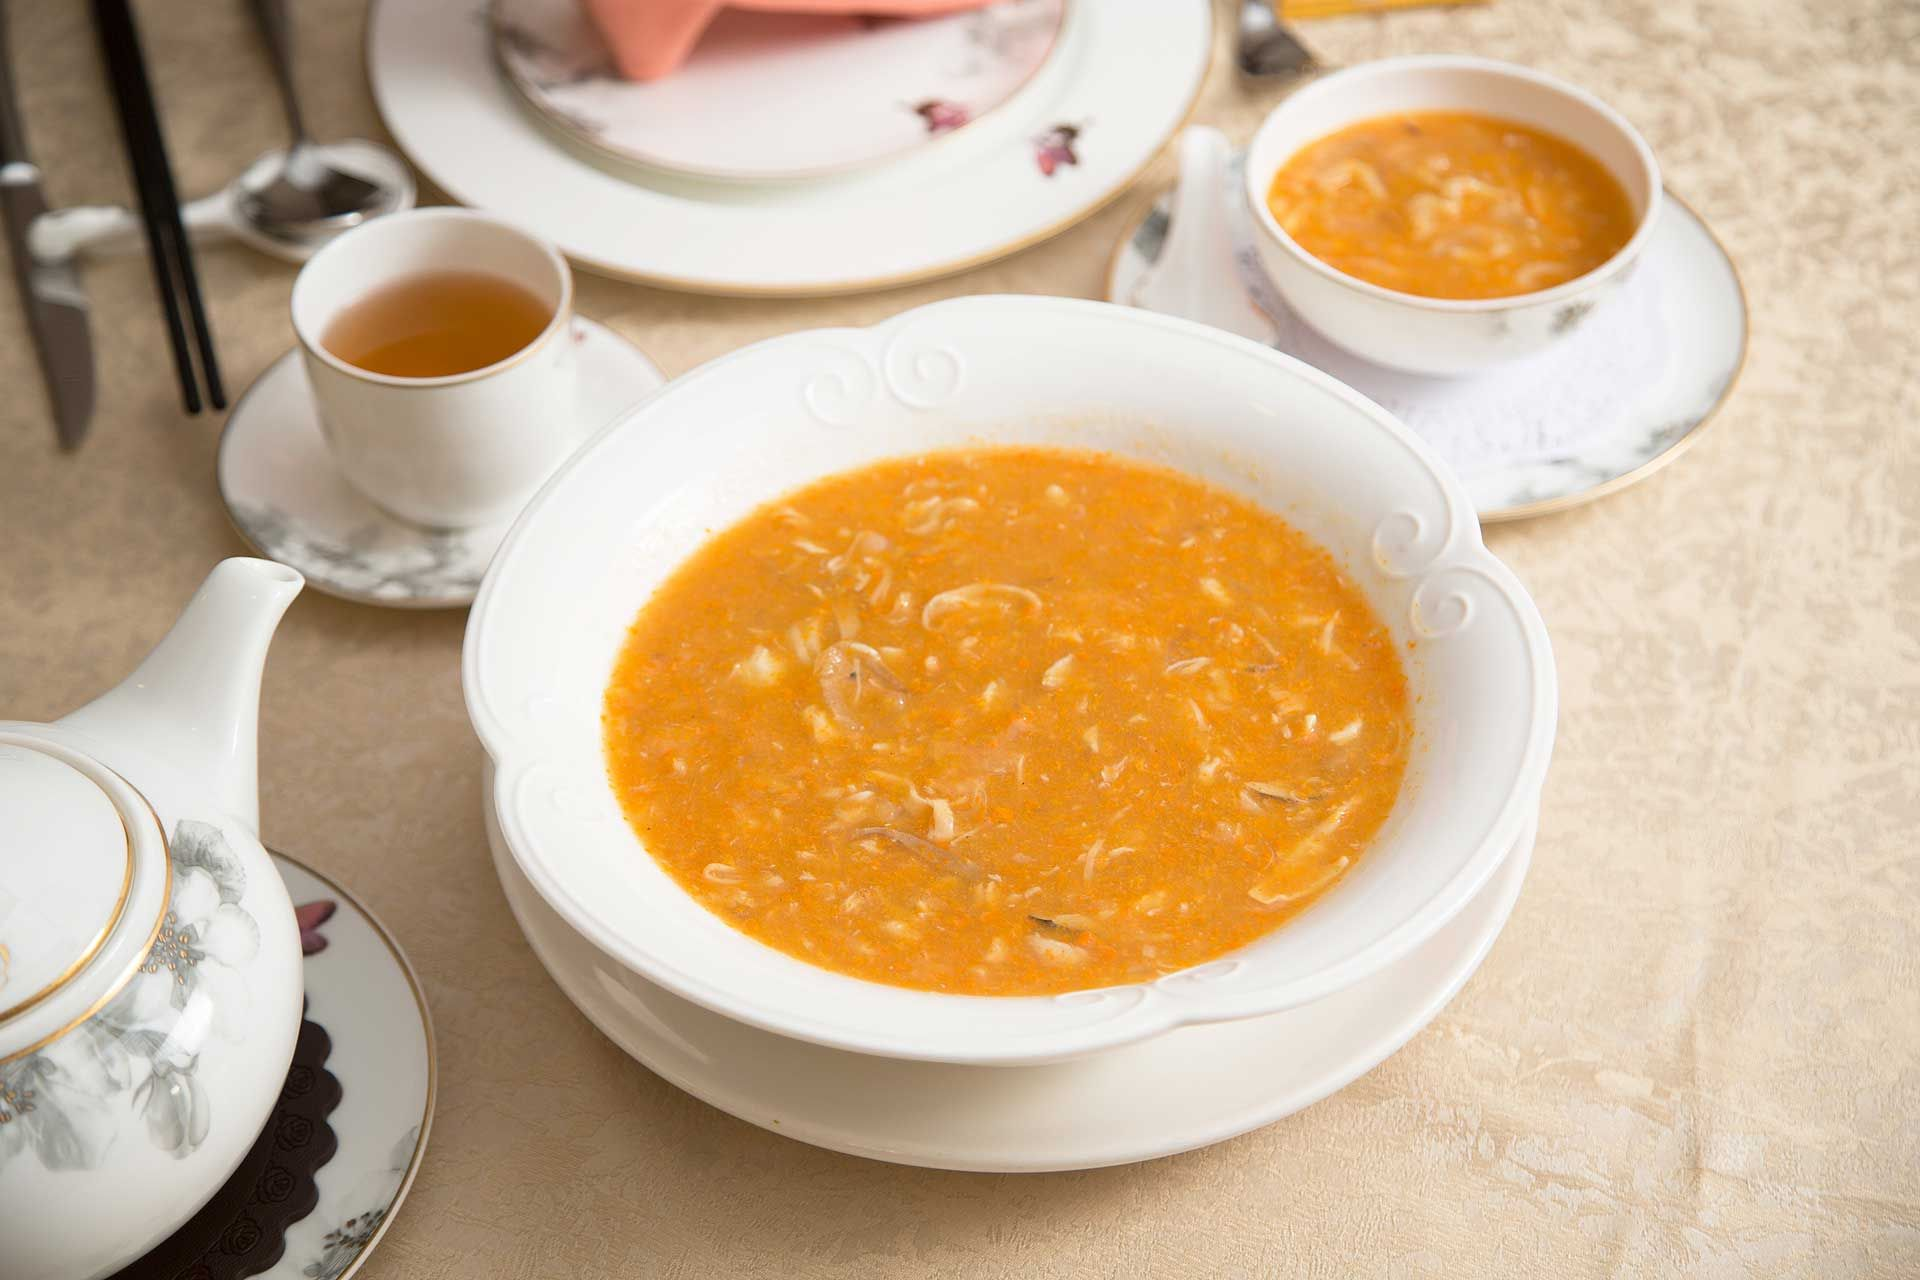 Braised crab meat soup with fish maw, fish lips and crab roe